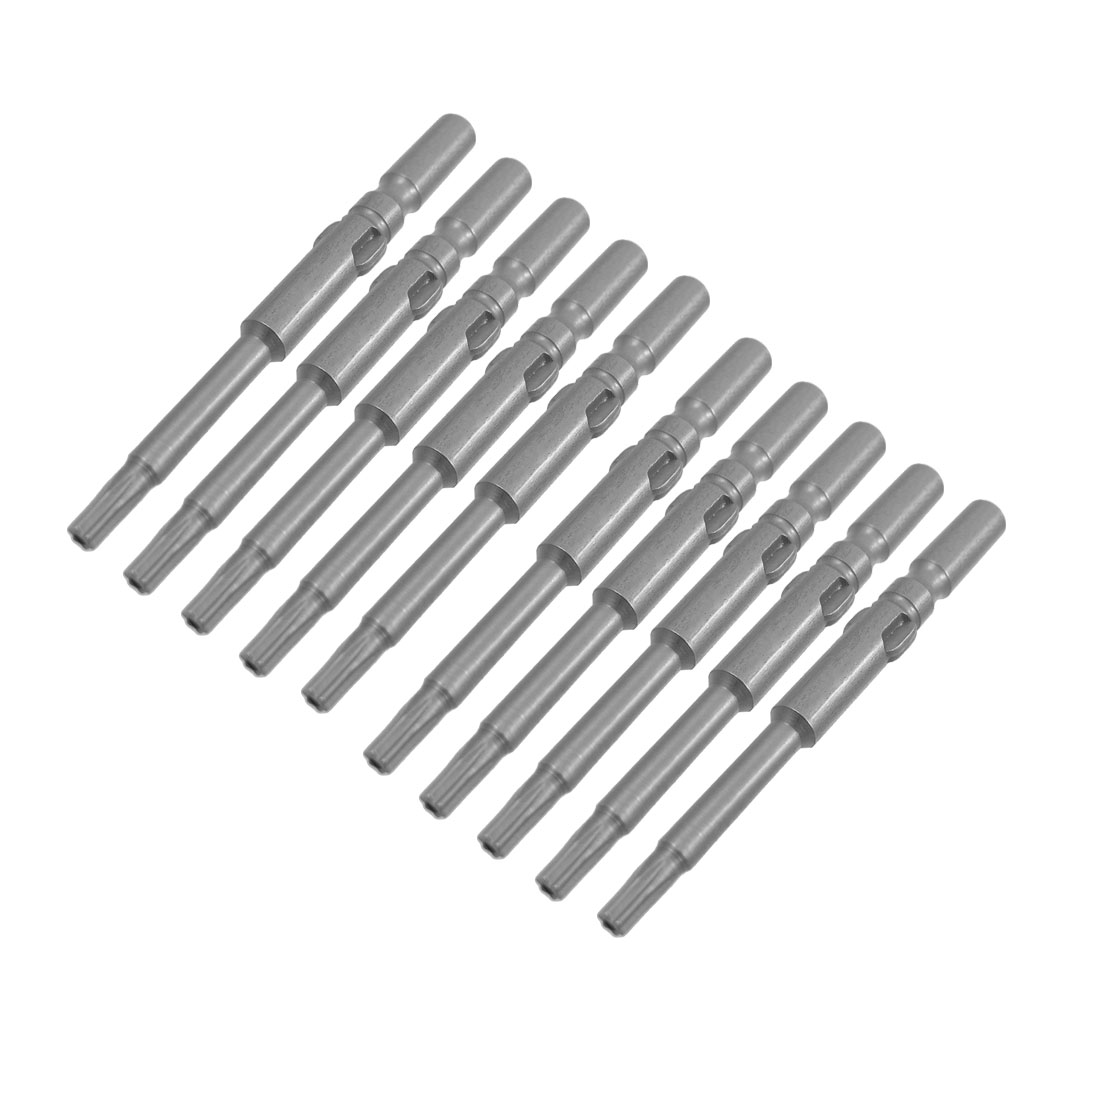 10 Pcs T10 Gray Magnetic 3mm Tip Hex Screwdriver Bits Tool